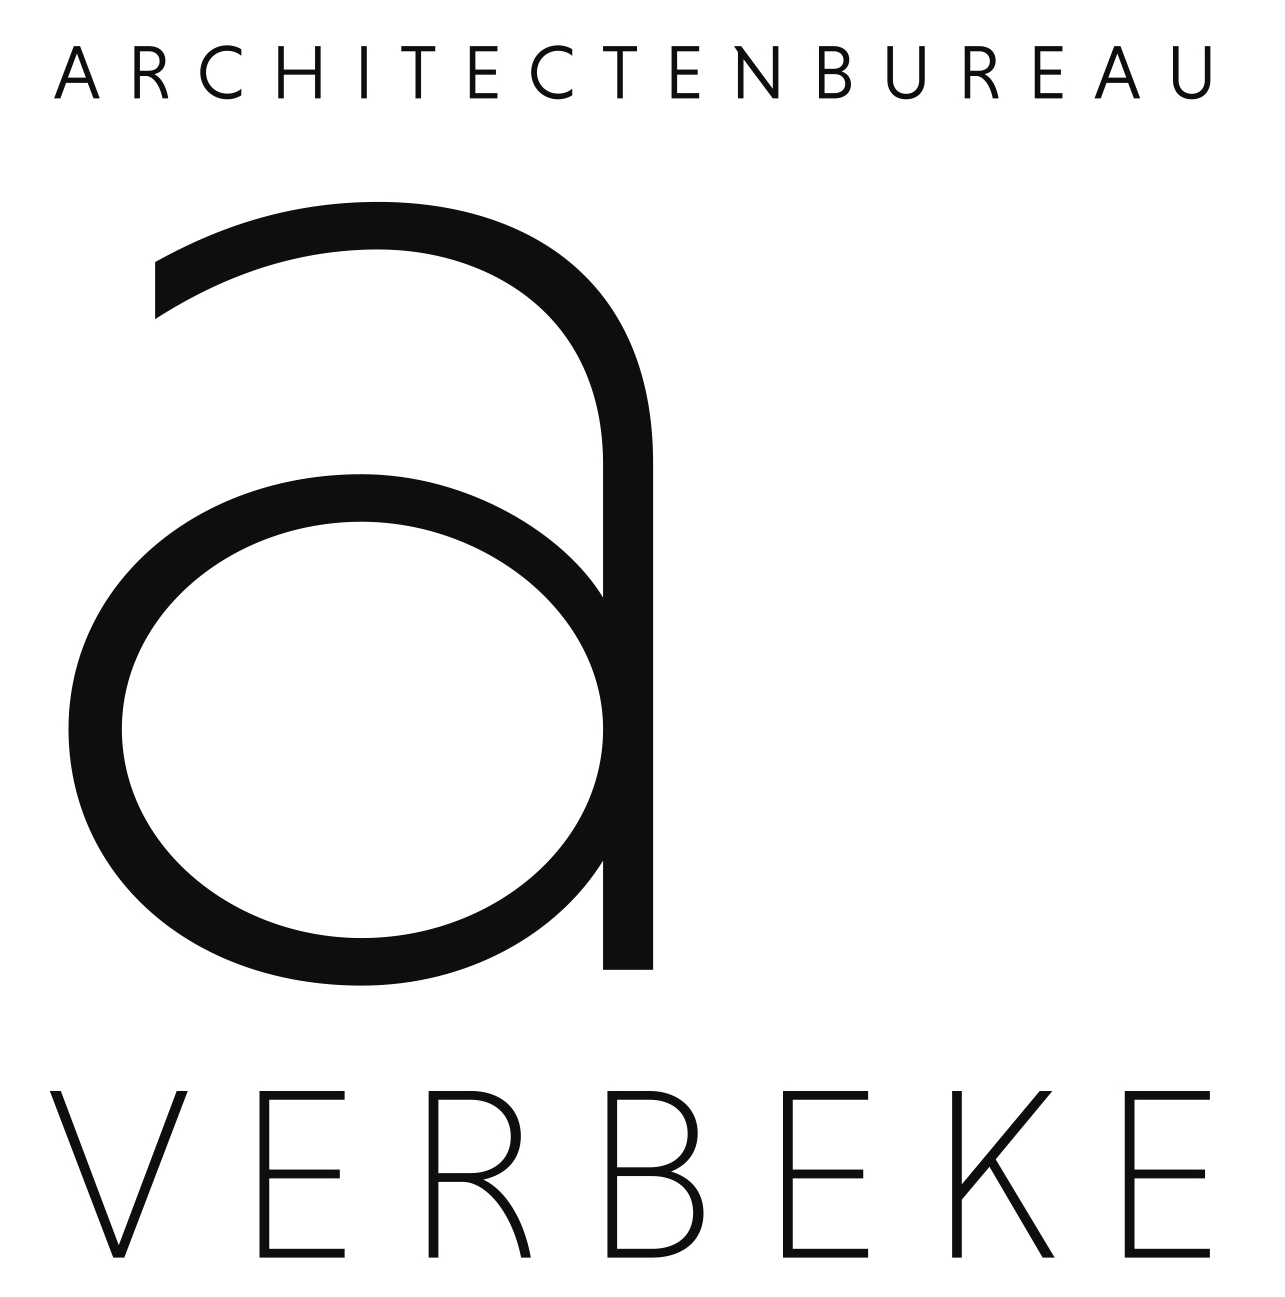 axel verbeke architect